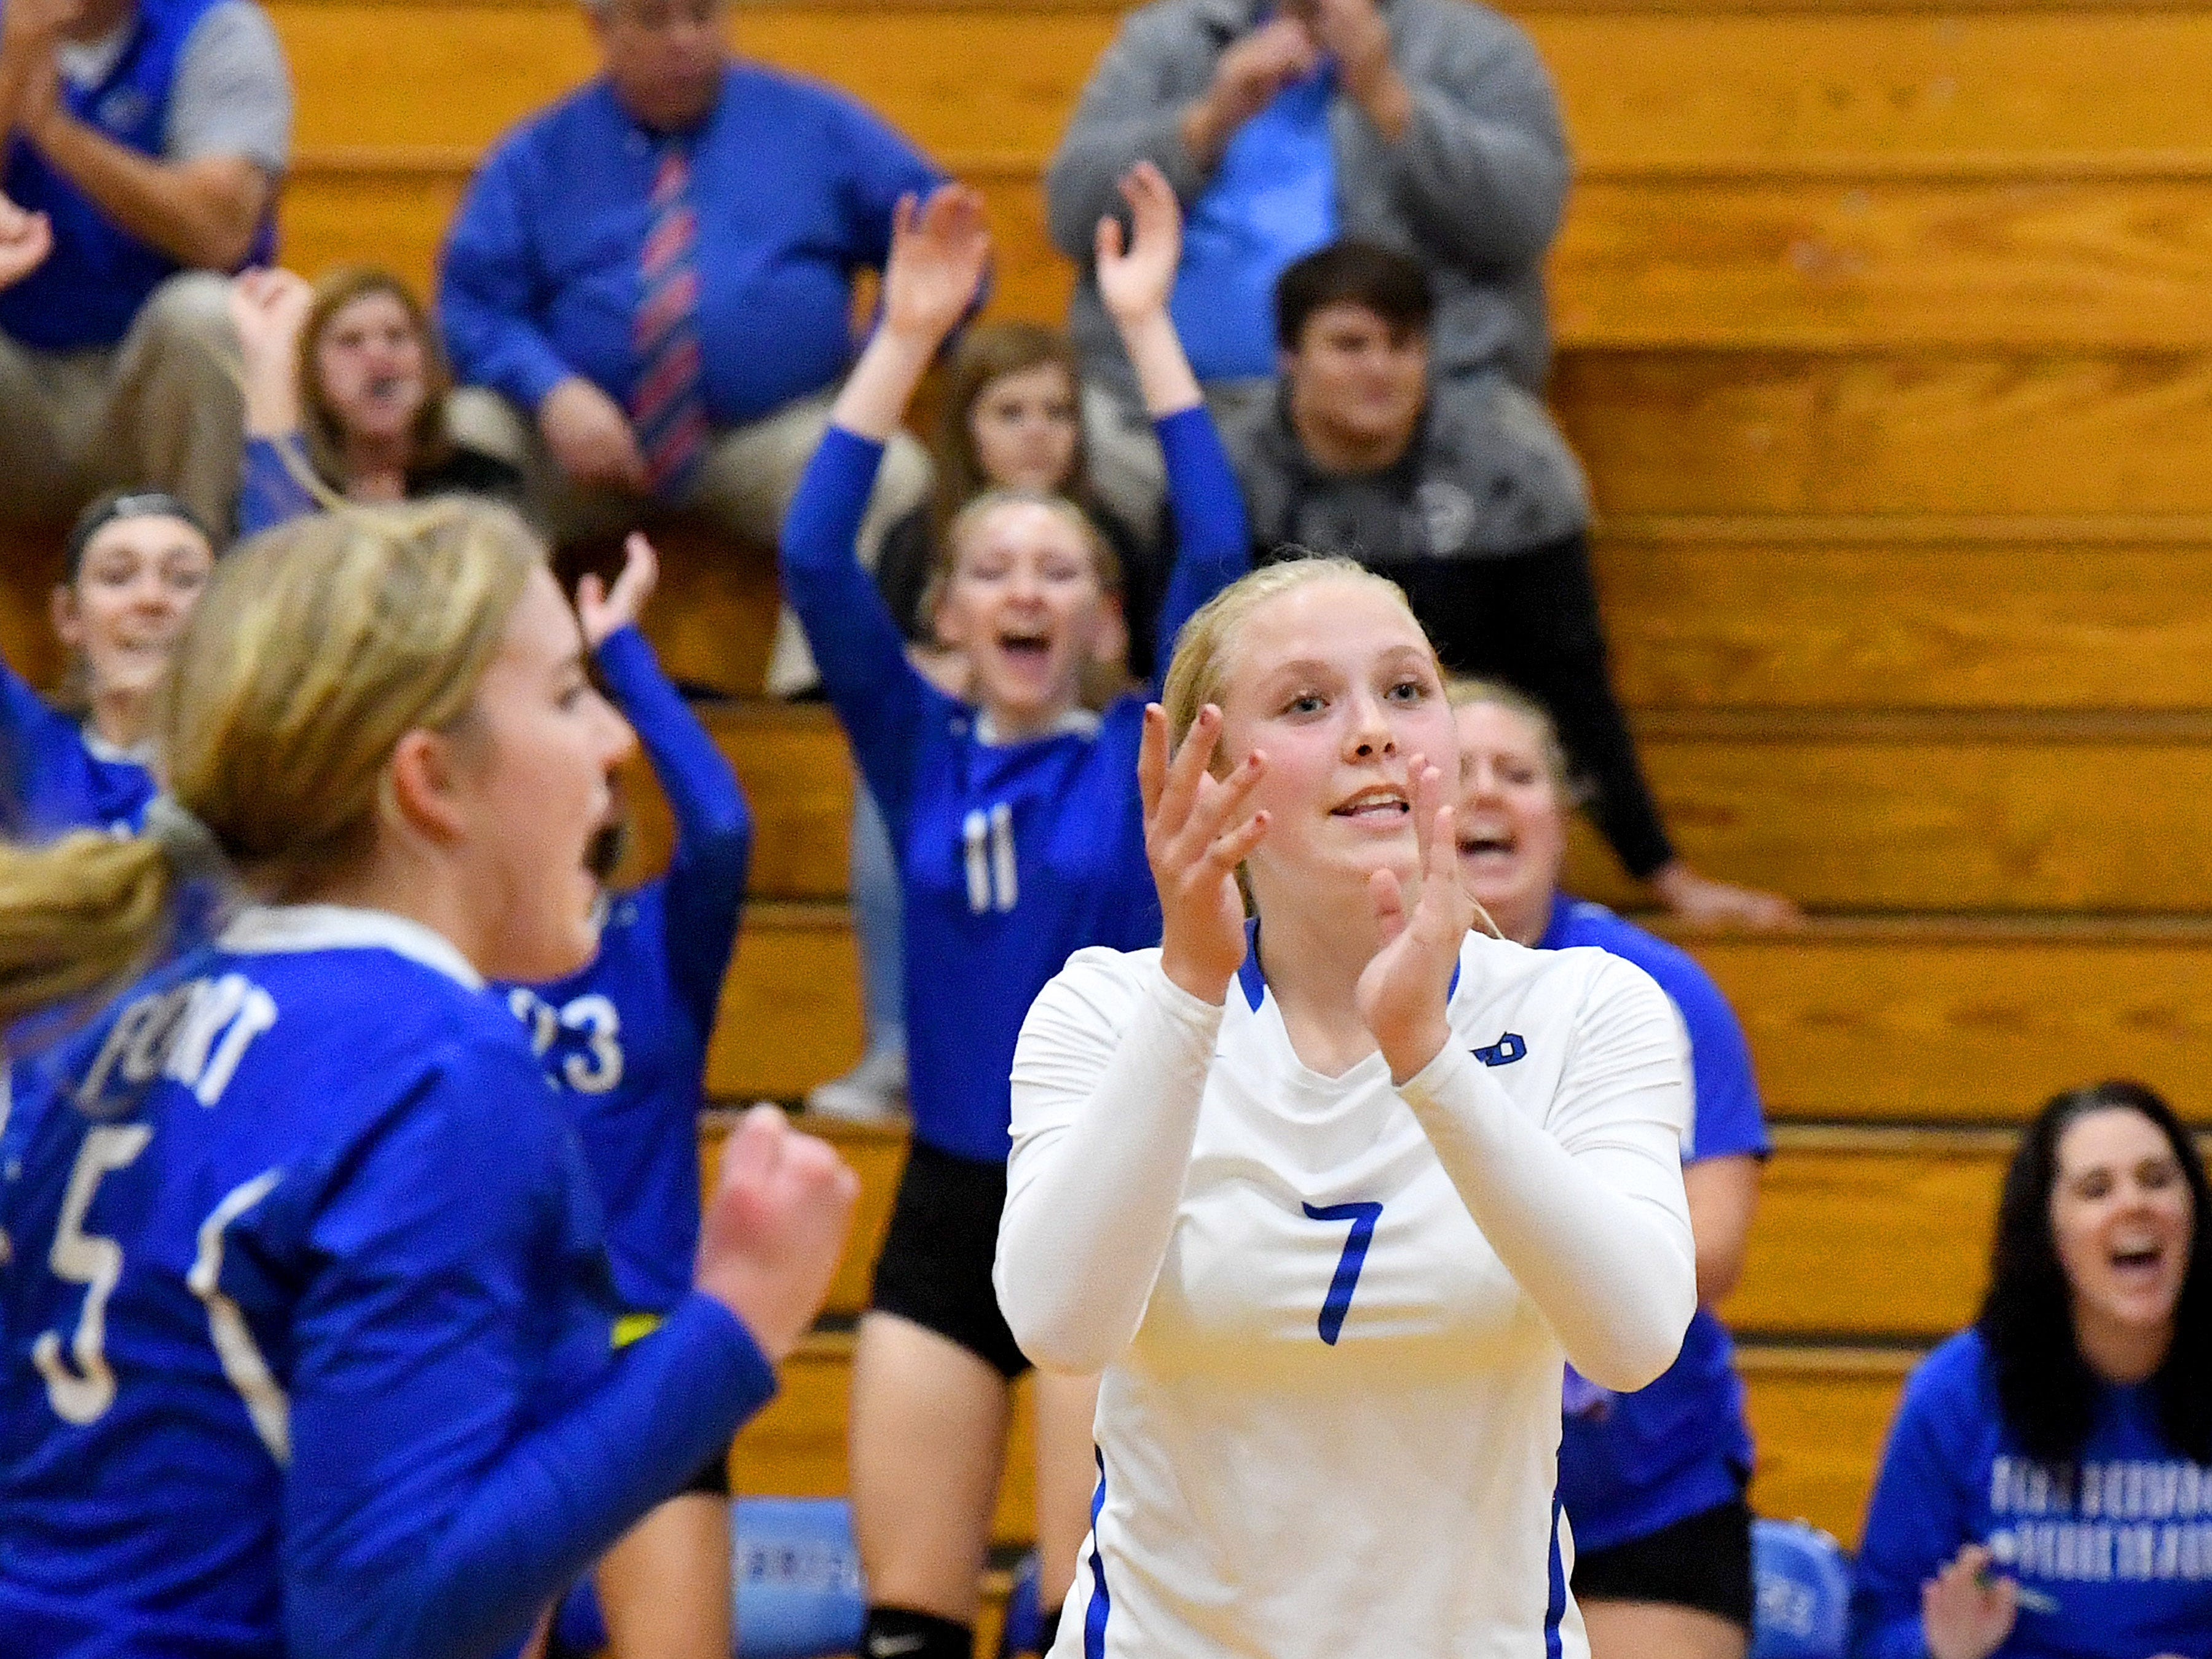 Fort Defiance's Jordan Schulz cheers for a point scored during a Region 3C semifinal match played in Lexington on Monday, Nov. 5, 2018.